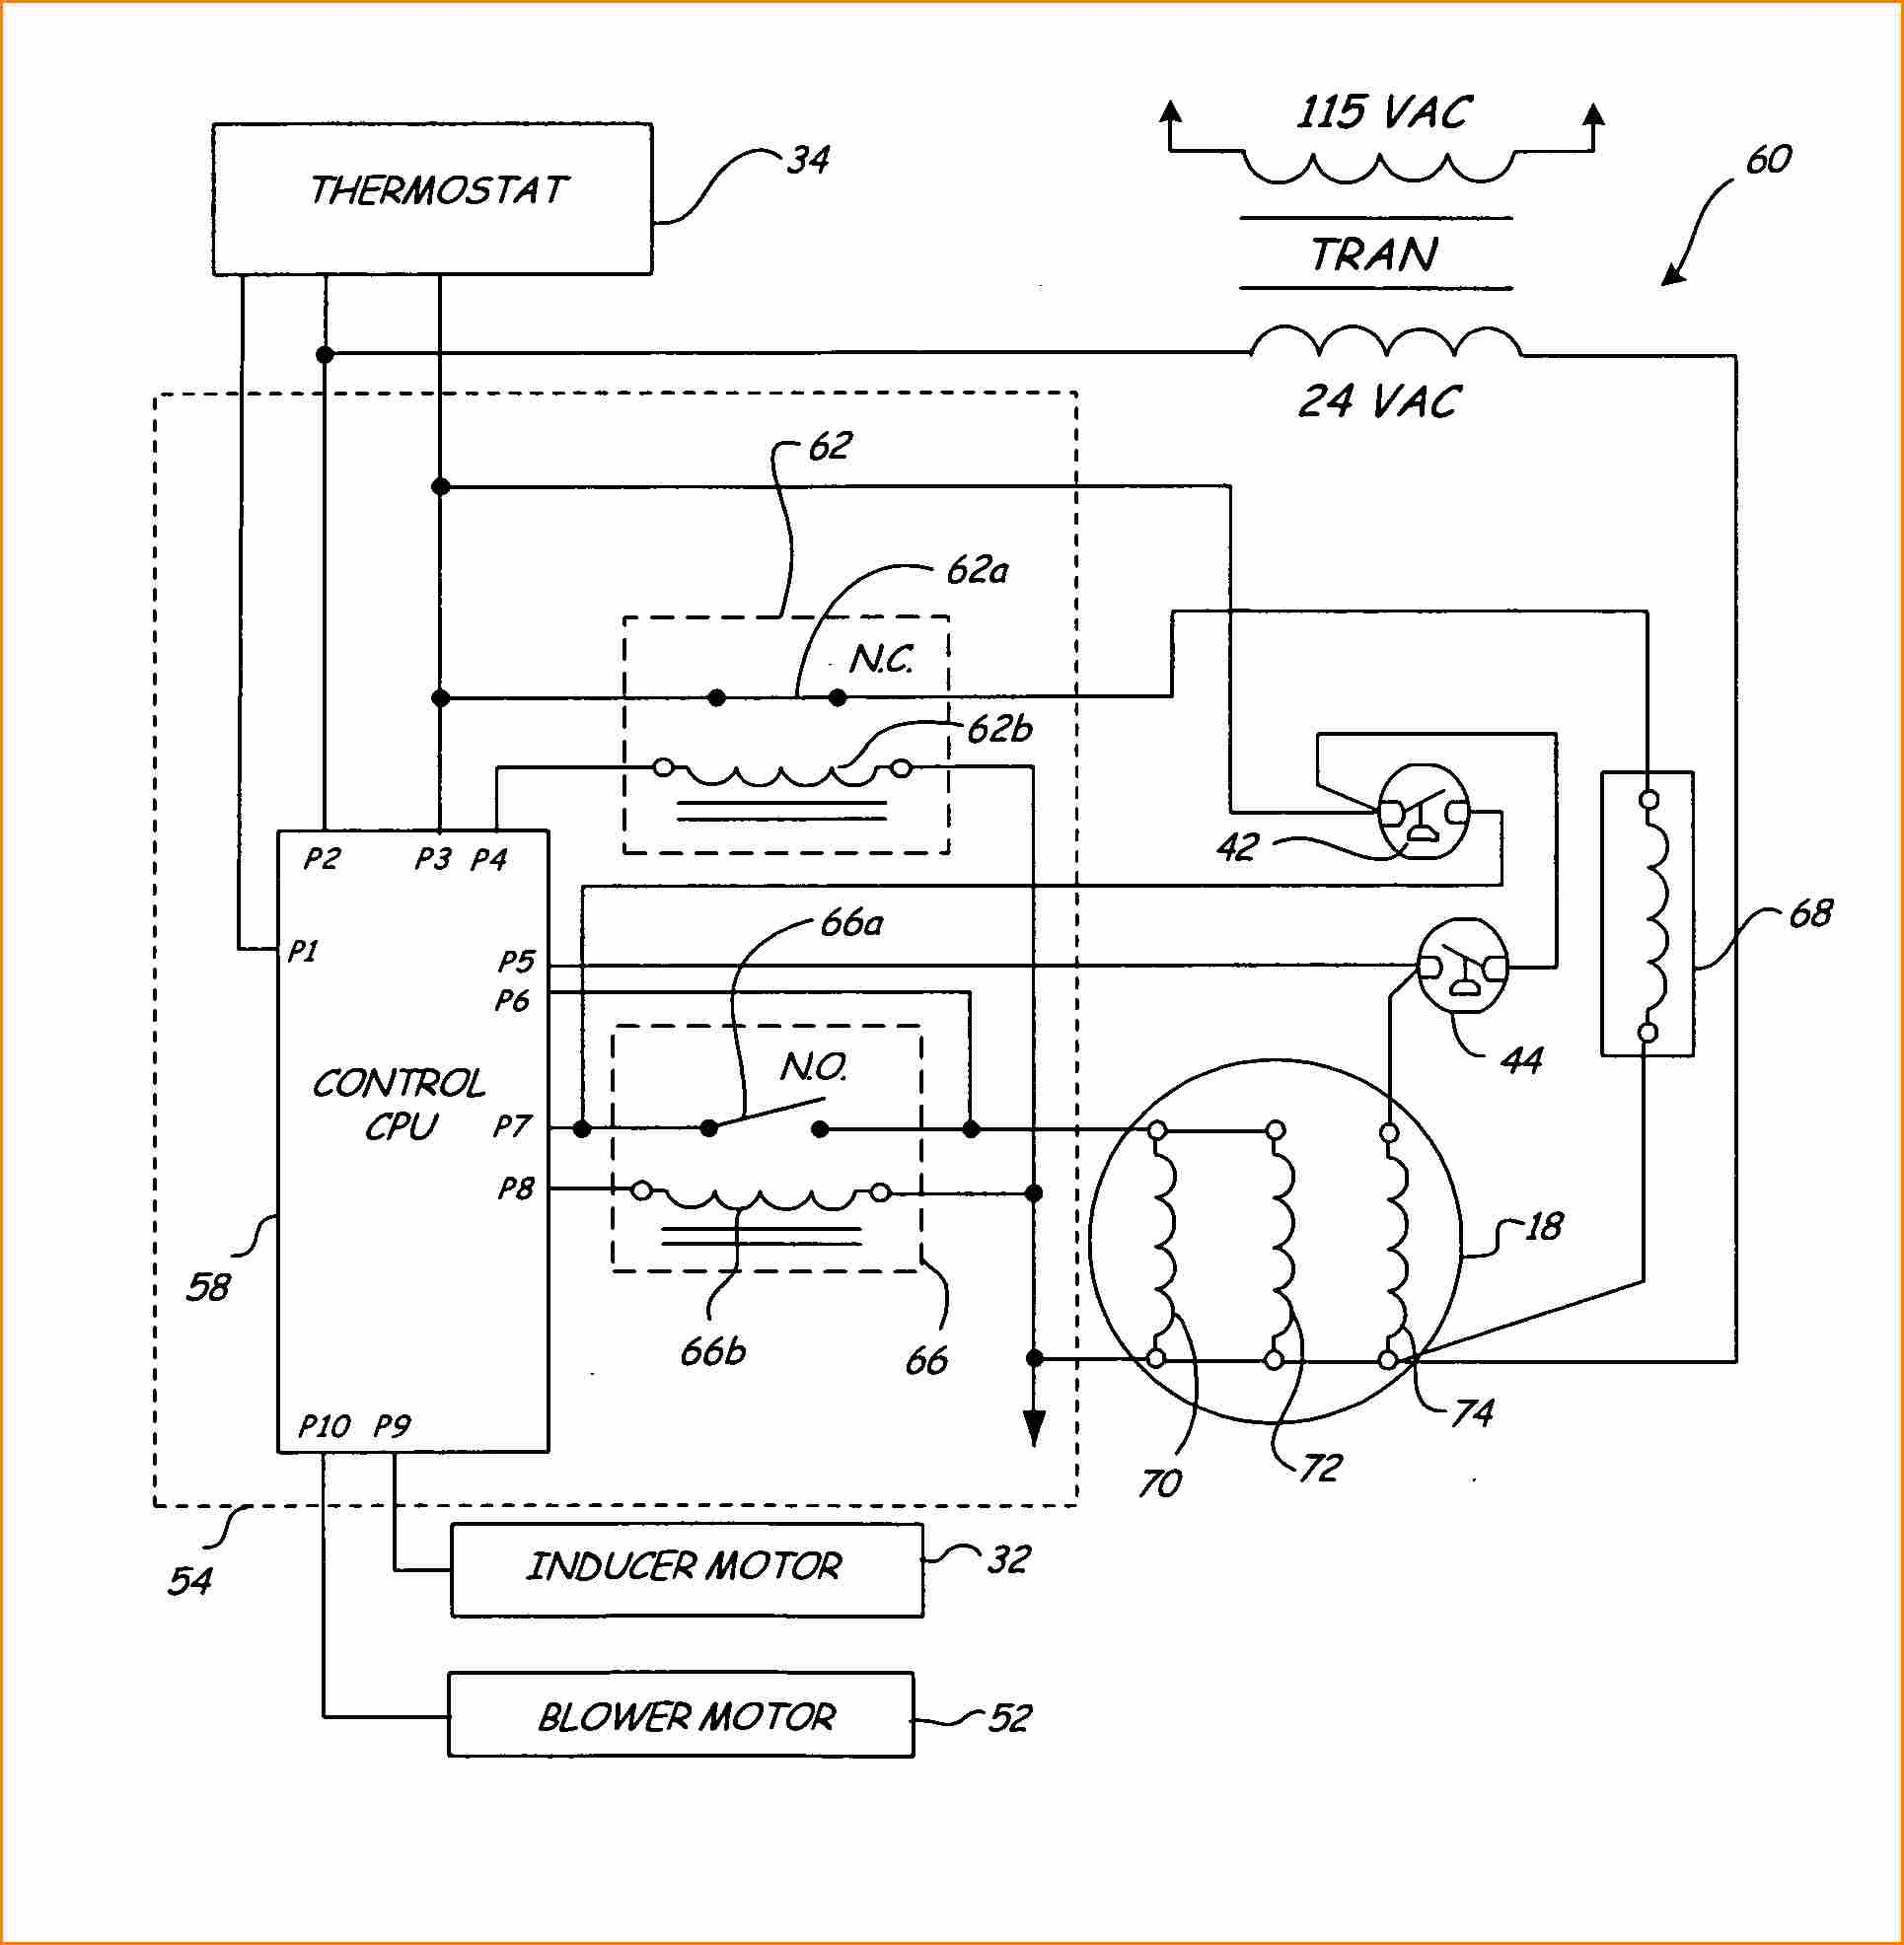 modine gas heater wiring diagram Download-Modine Gas Heater Wiring Diagram Luxury Gas Furnace Wiring Diagram Modine Gas Heater Wiring Diagram 5-h